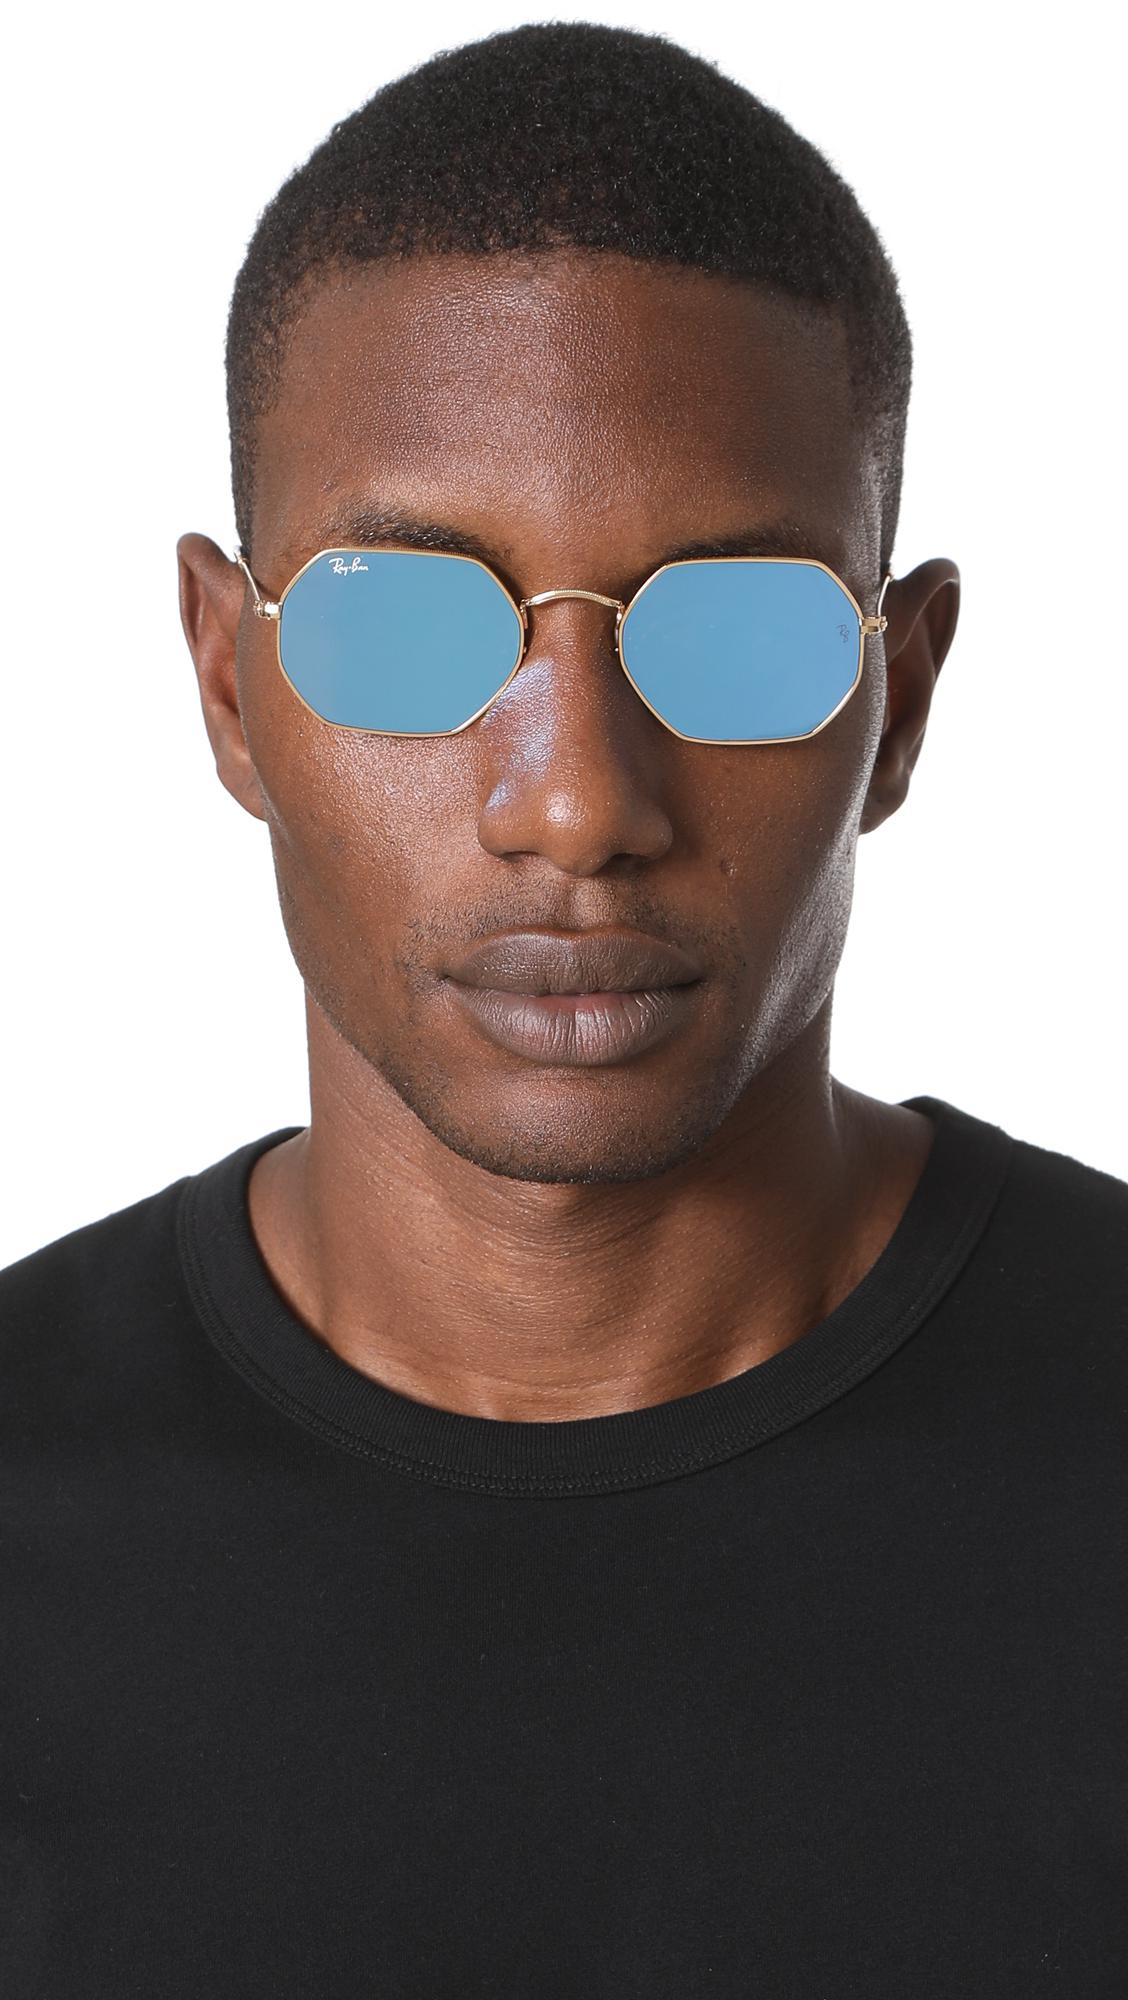 Lens Men Ray For Ban Flat In Lyst Octagon Sunglasses Blue 9bDWEH2IYe